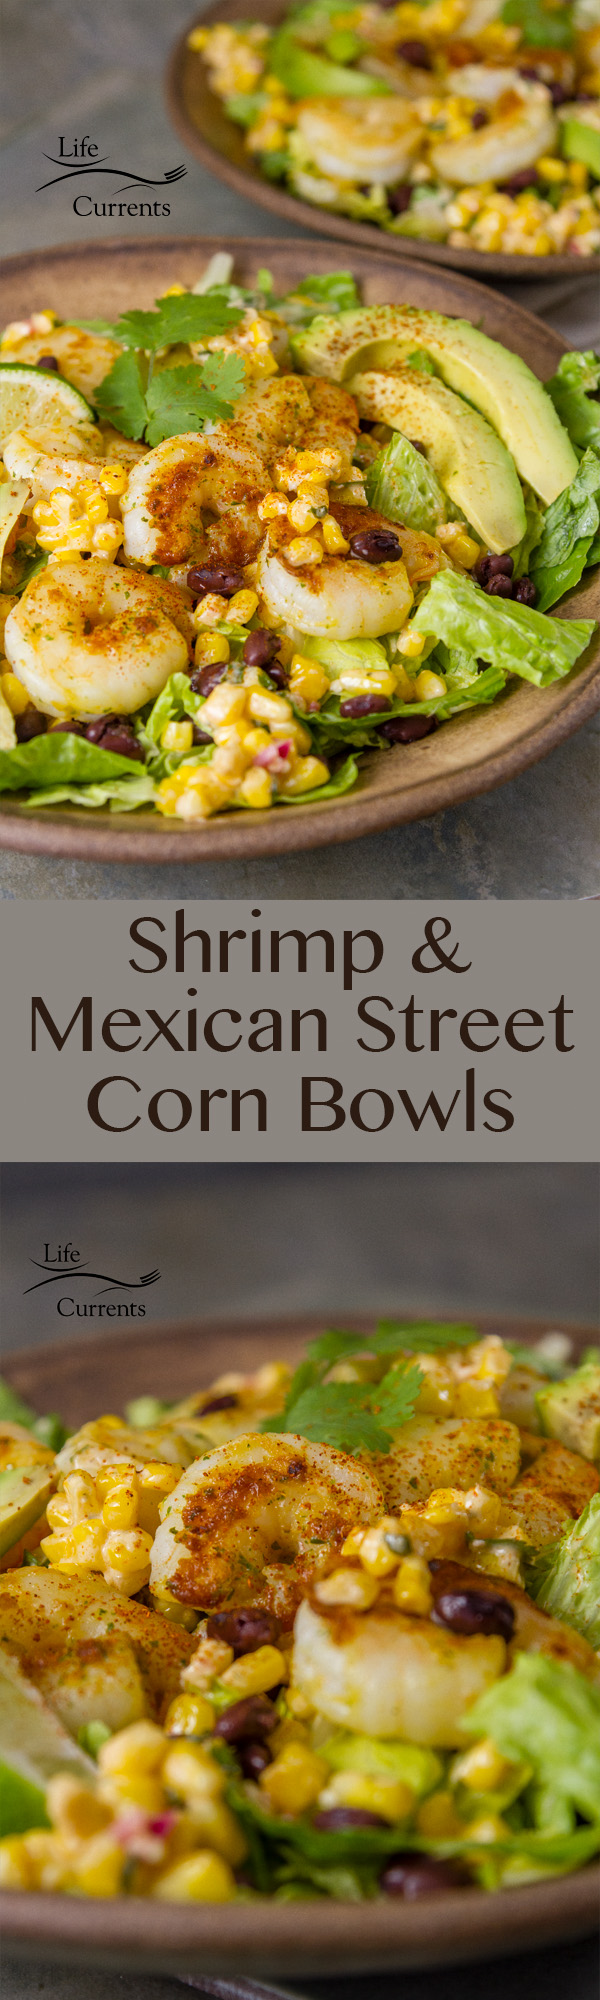 Shrimp and Mexican Street Corn Bowl Perfectly spiced and sautéed shrimp served on a bed of romaine lettuce, topped with delicious Mexican street corn, and then topped with fresh avocado slices. It's a Mexican bowl that's everything you want in a an easy and tasty 30-minute meal.